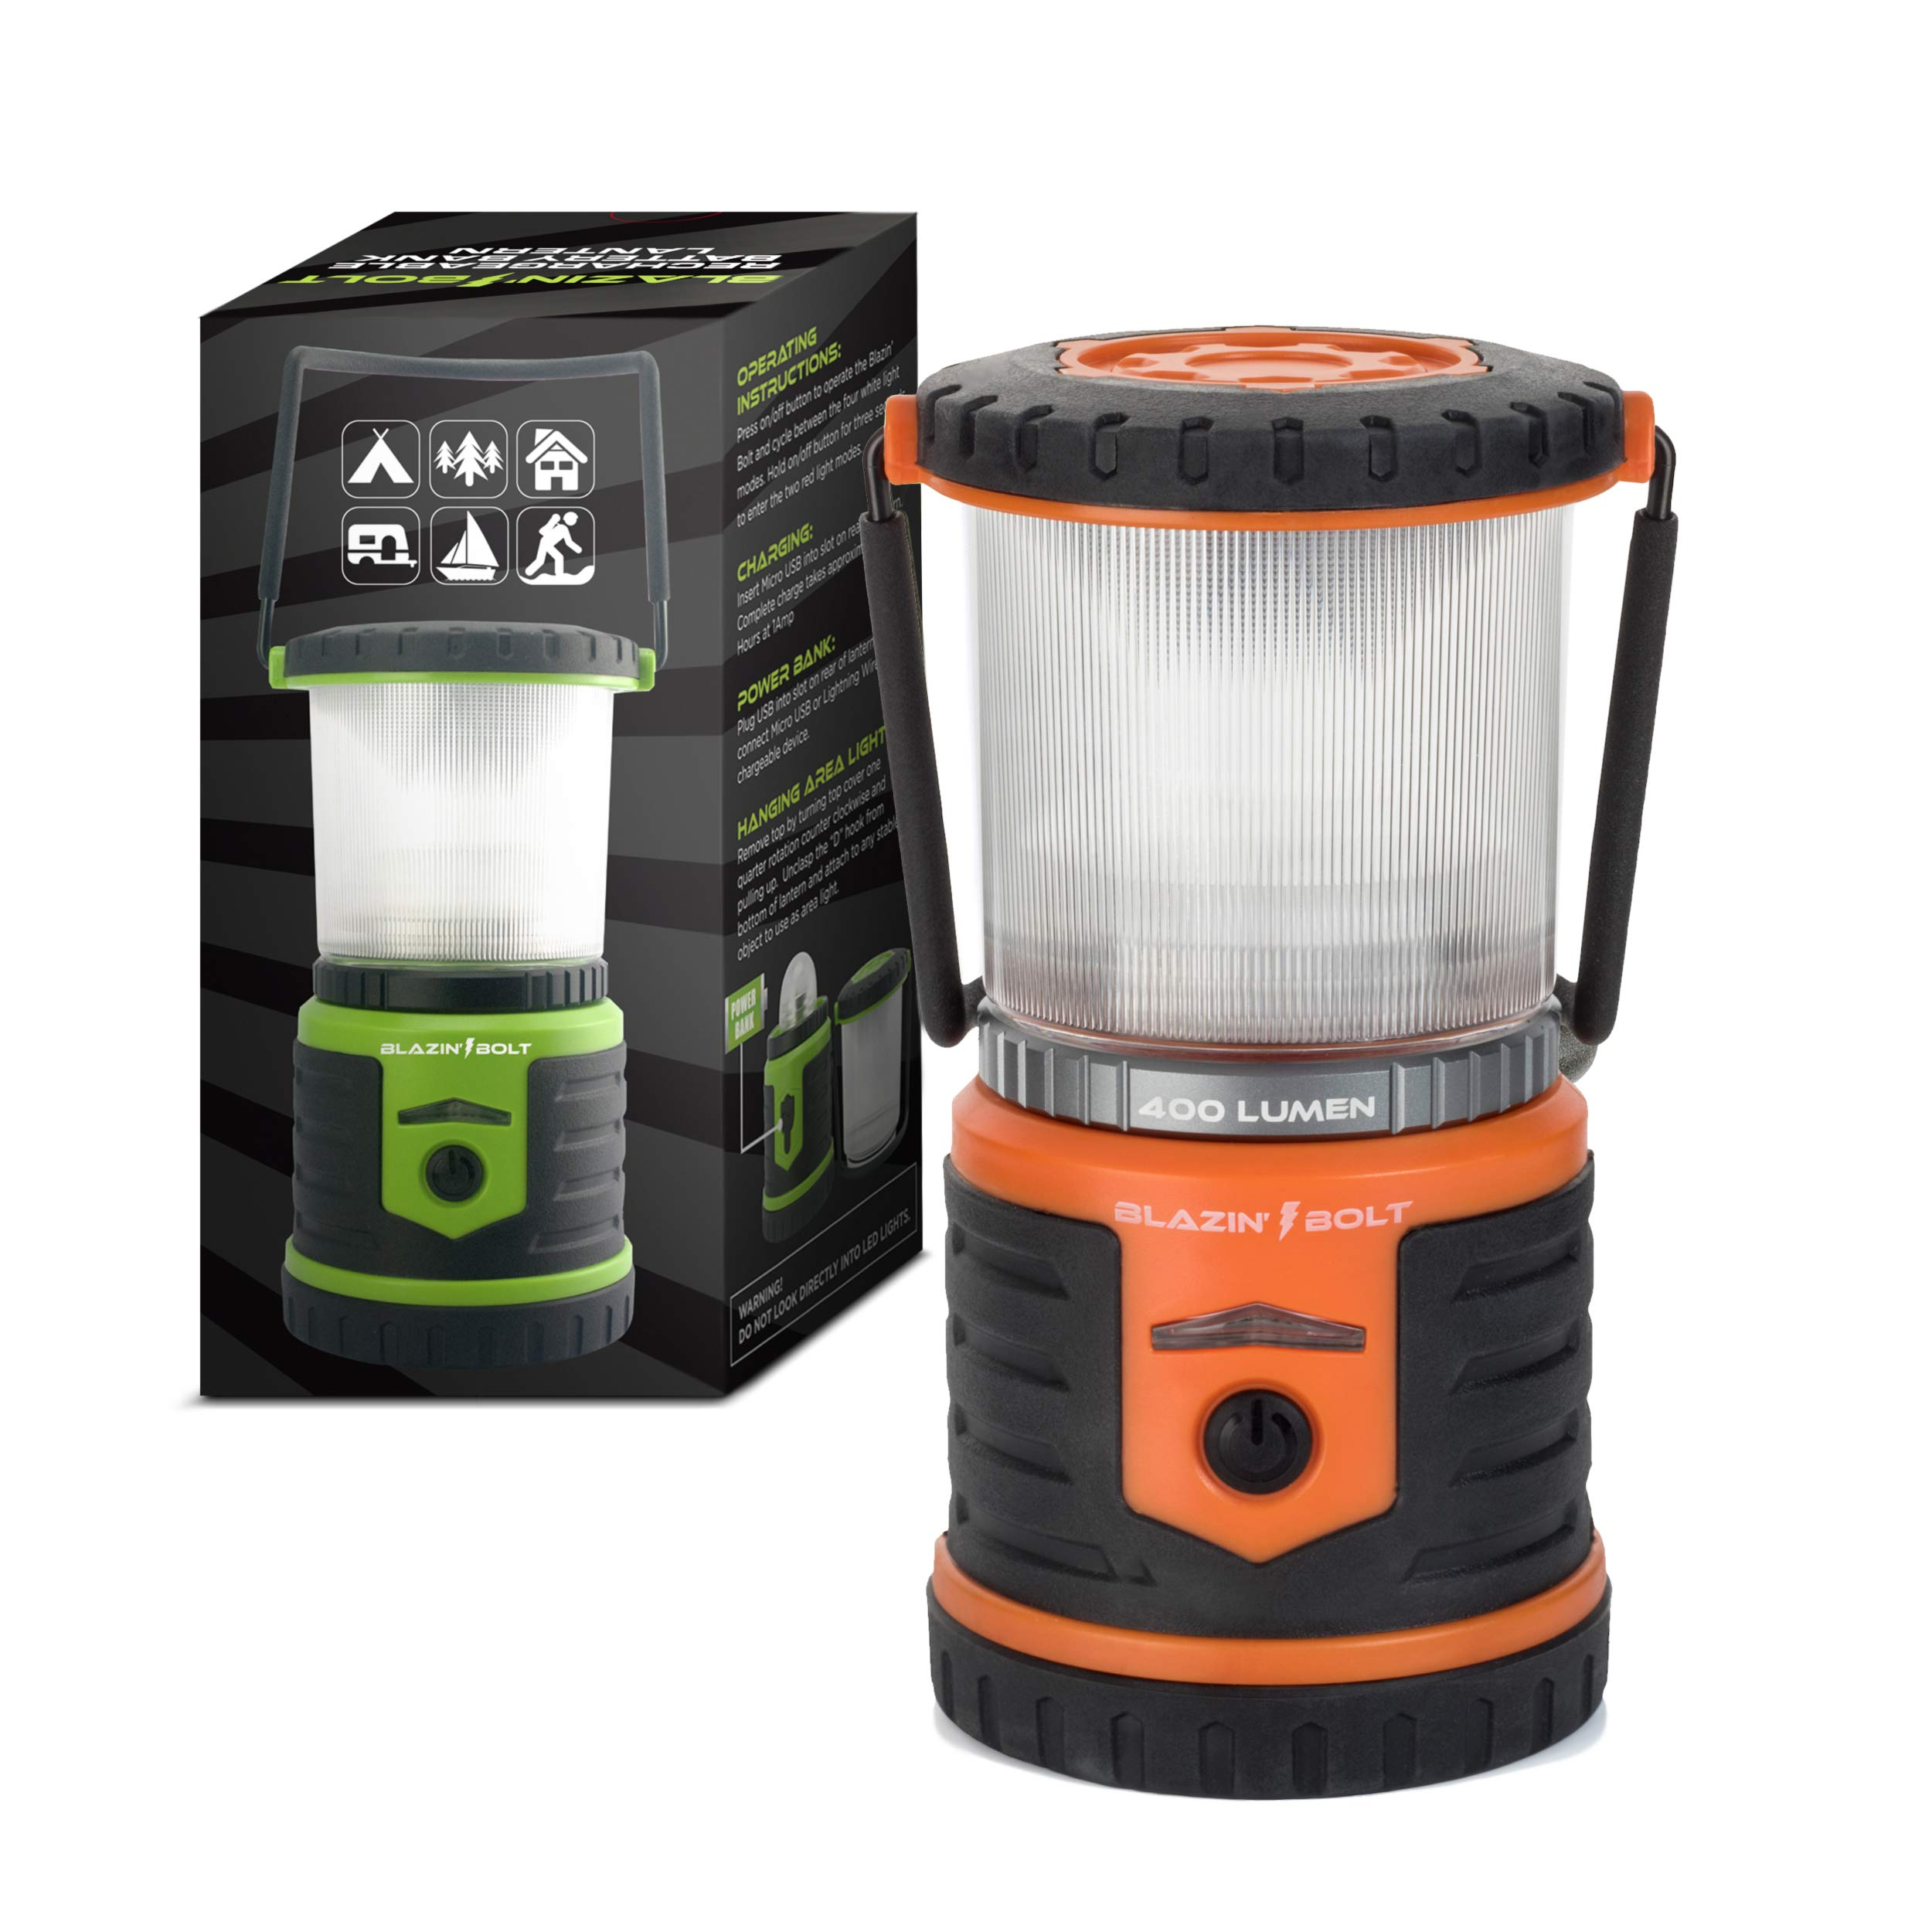 Brightest Rechargeable Lantern LED | Hurricane, Blackout, Storm | Power Bank Light | 400 Hour Runtime (Orange) by Blazin' Bison (Image #5)